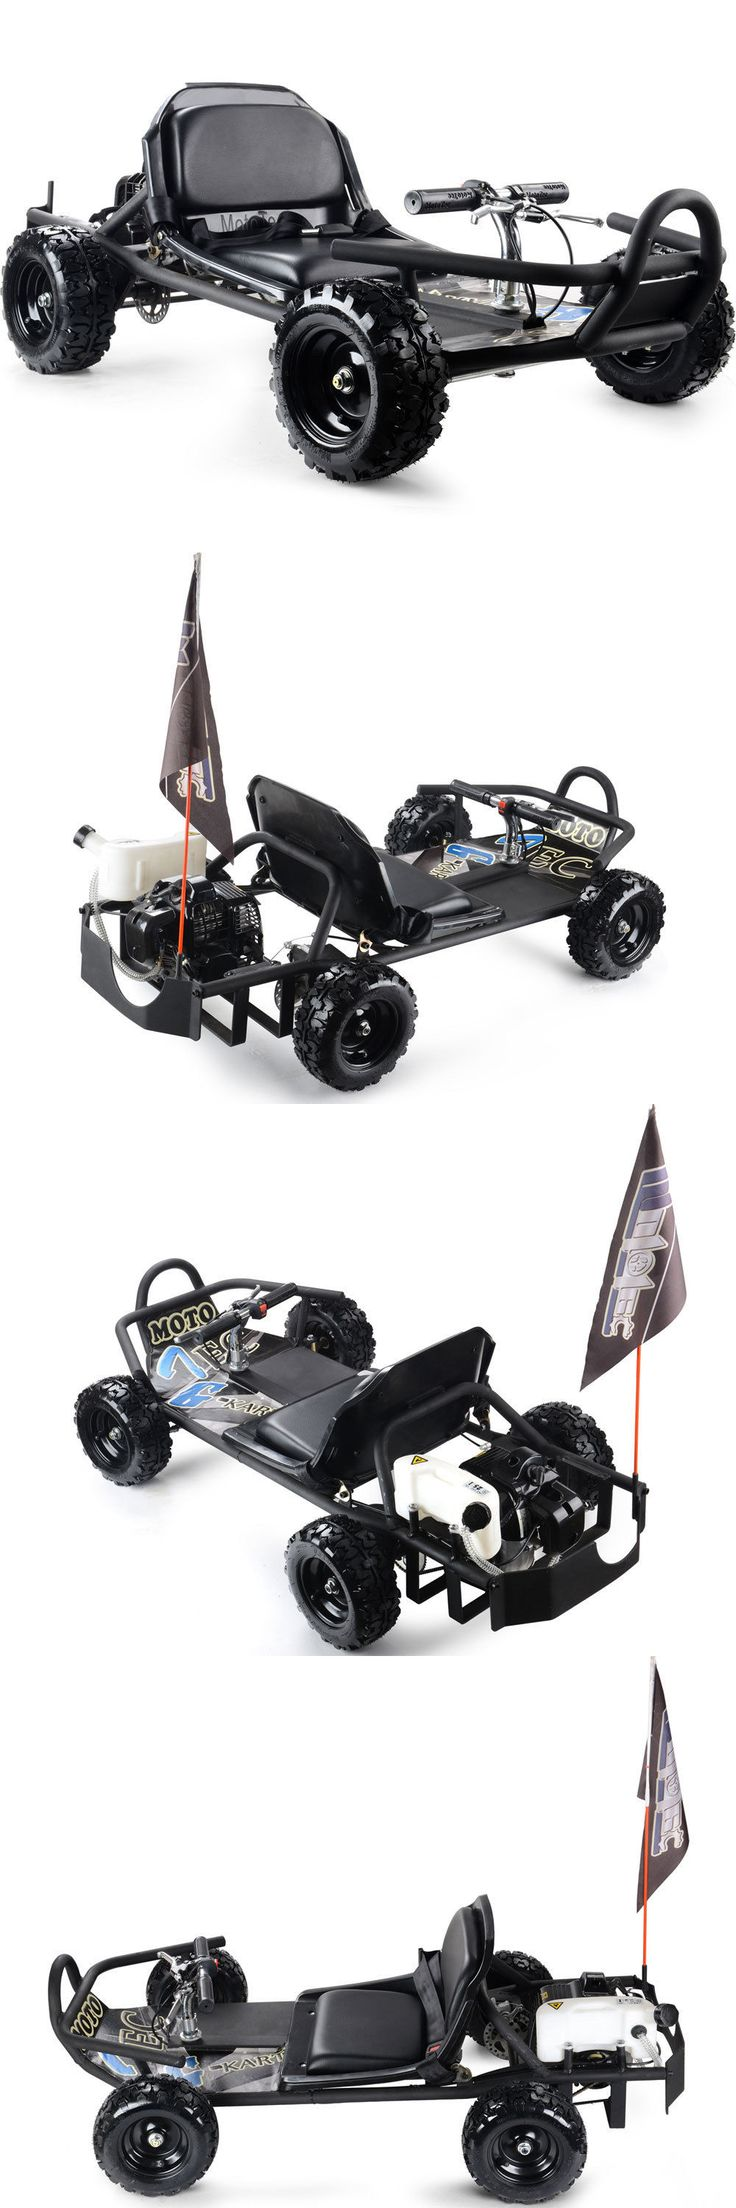 Complete Go-Karts and Frames 64656: Gas Powered Go Kart 49Cc Black City Crawler ! Drive Cruise Fast Fun Great New ! -> BUY IT NOW ONLY: $639.75 on eBay!